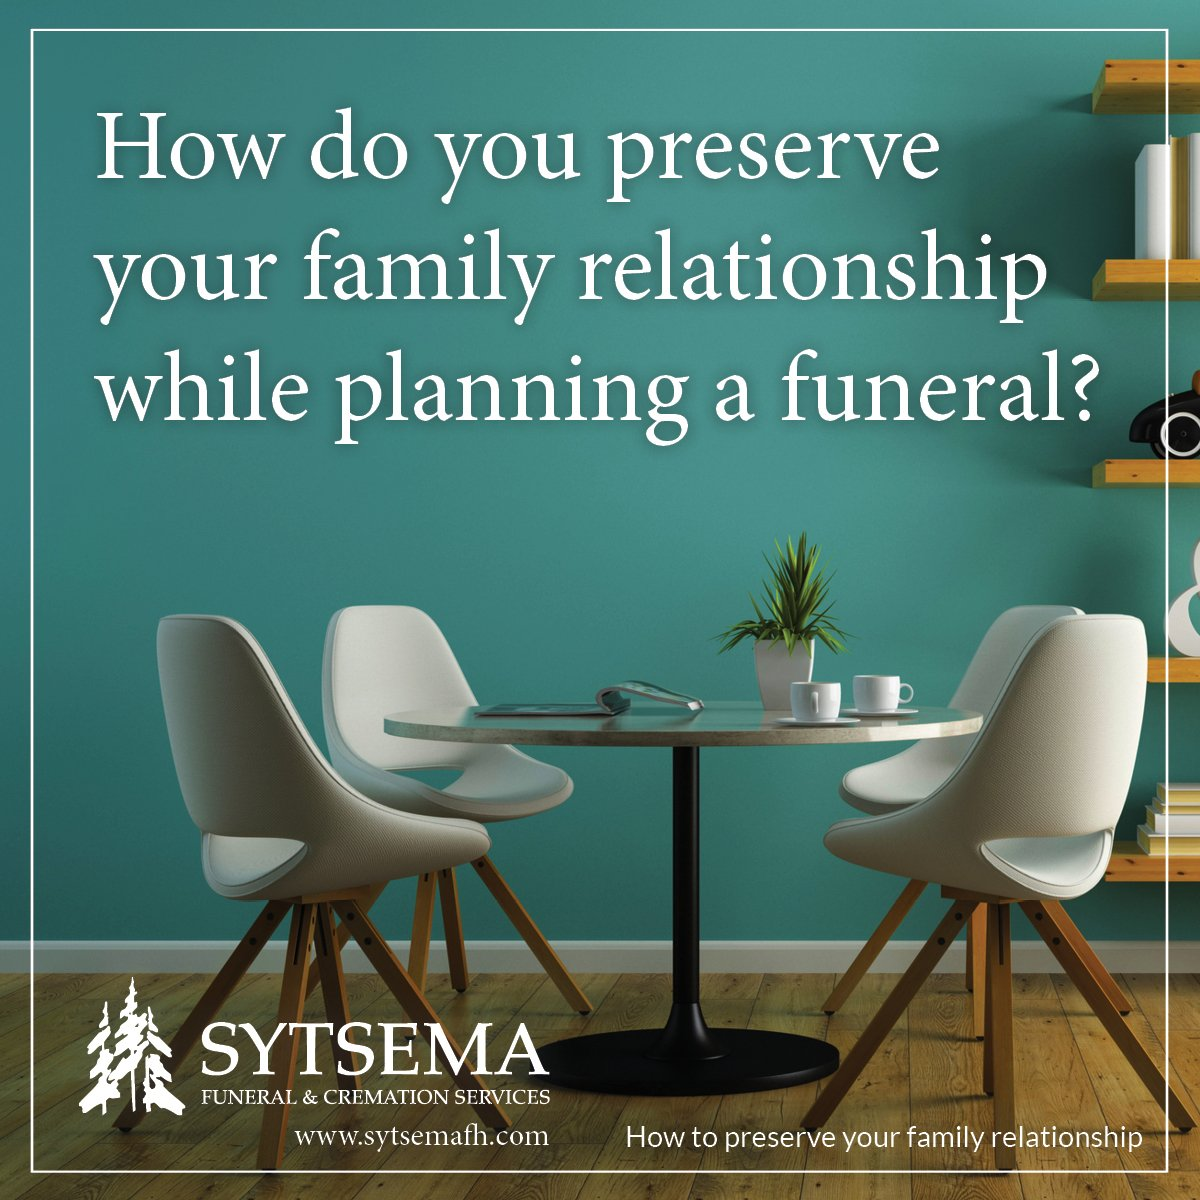 Preserving the Family Relationship while Planning a Funeral